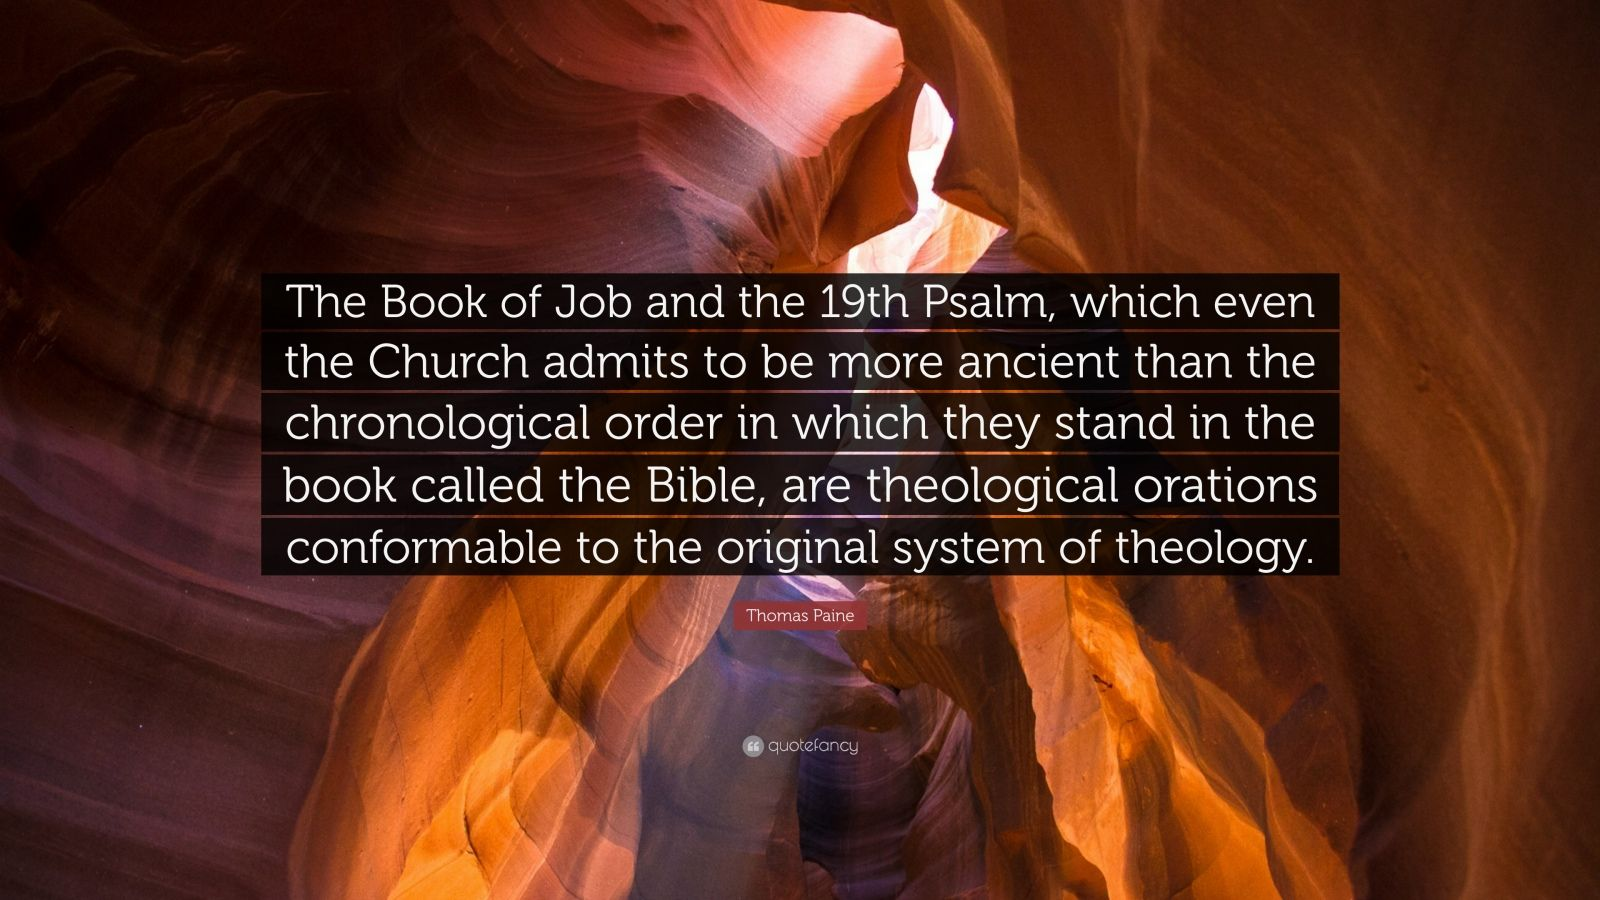 "Thomas Paine Quote: ""The Book of Job and the 19th Psalm, which even the Church admits to be more ancient than the chronological order in which they stand in the book called the Bible, are theological orations conformable to the original system of theology."""